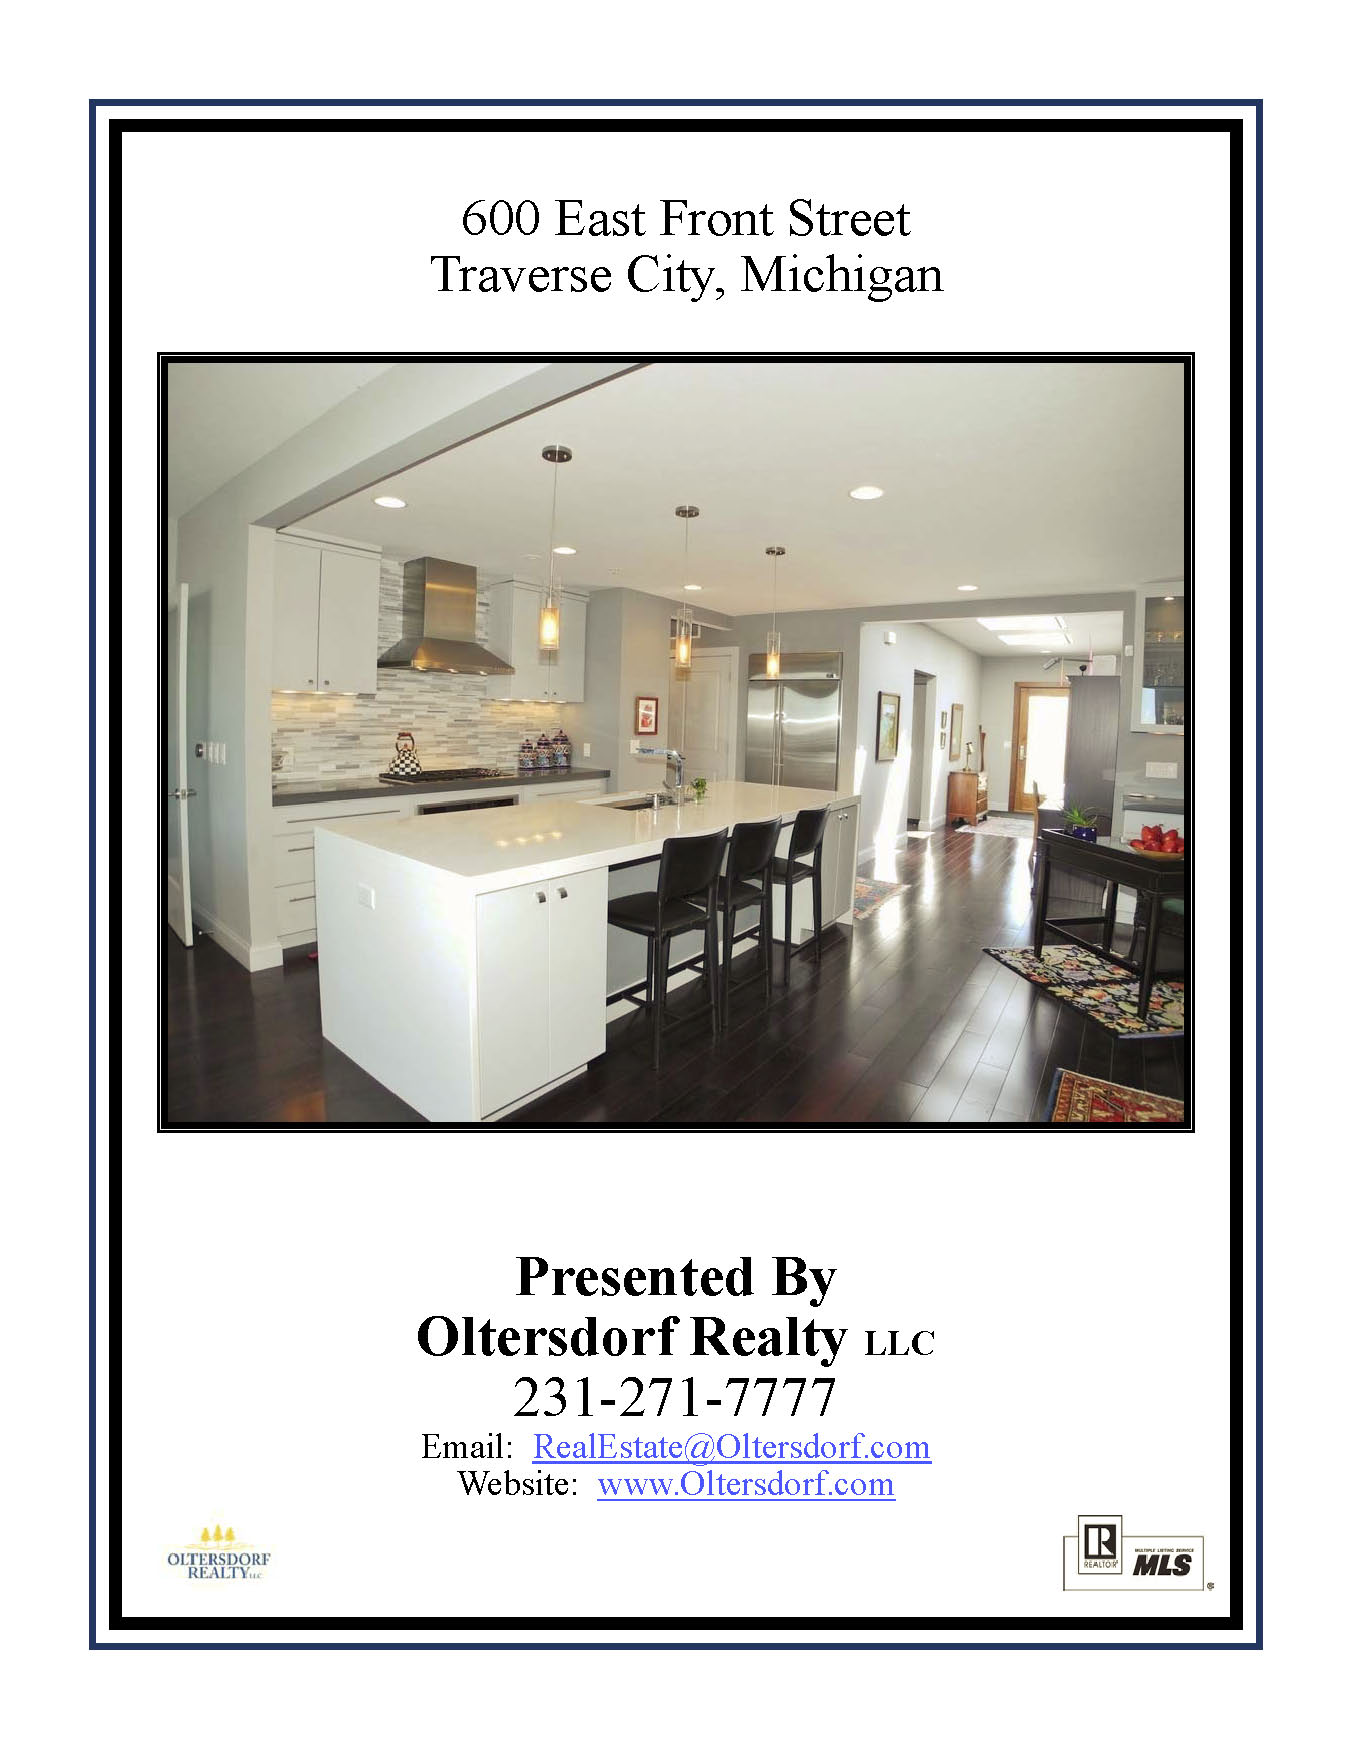 600 E Front Street #37, Traverse City, MI – Modern Downtown Traverse City Condo Marketing Packet for Sale by Oltersdorf Realty LLC (1).jpg